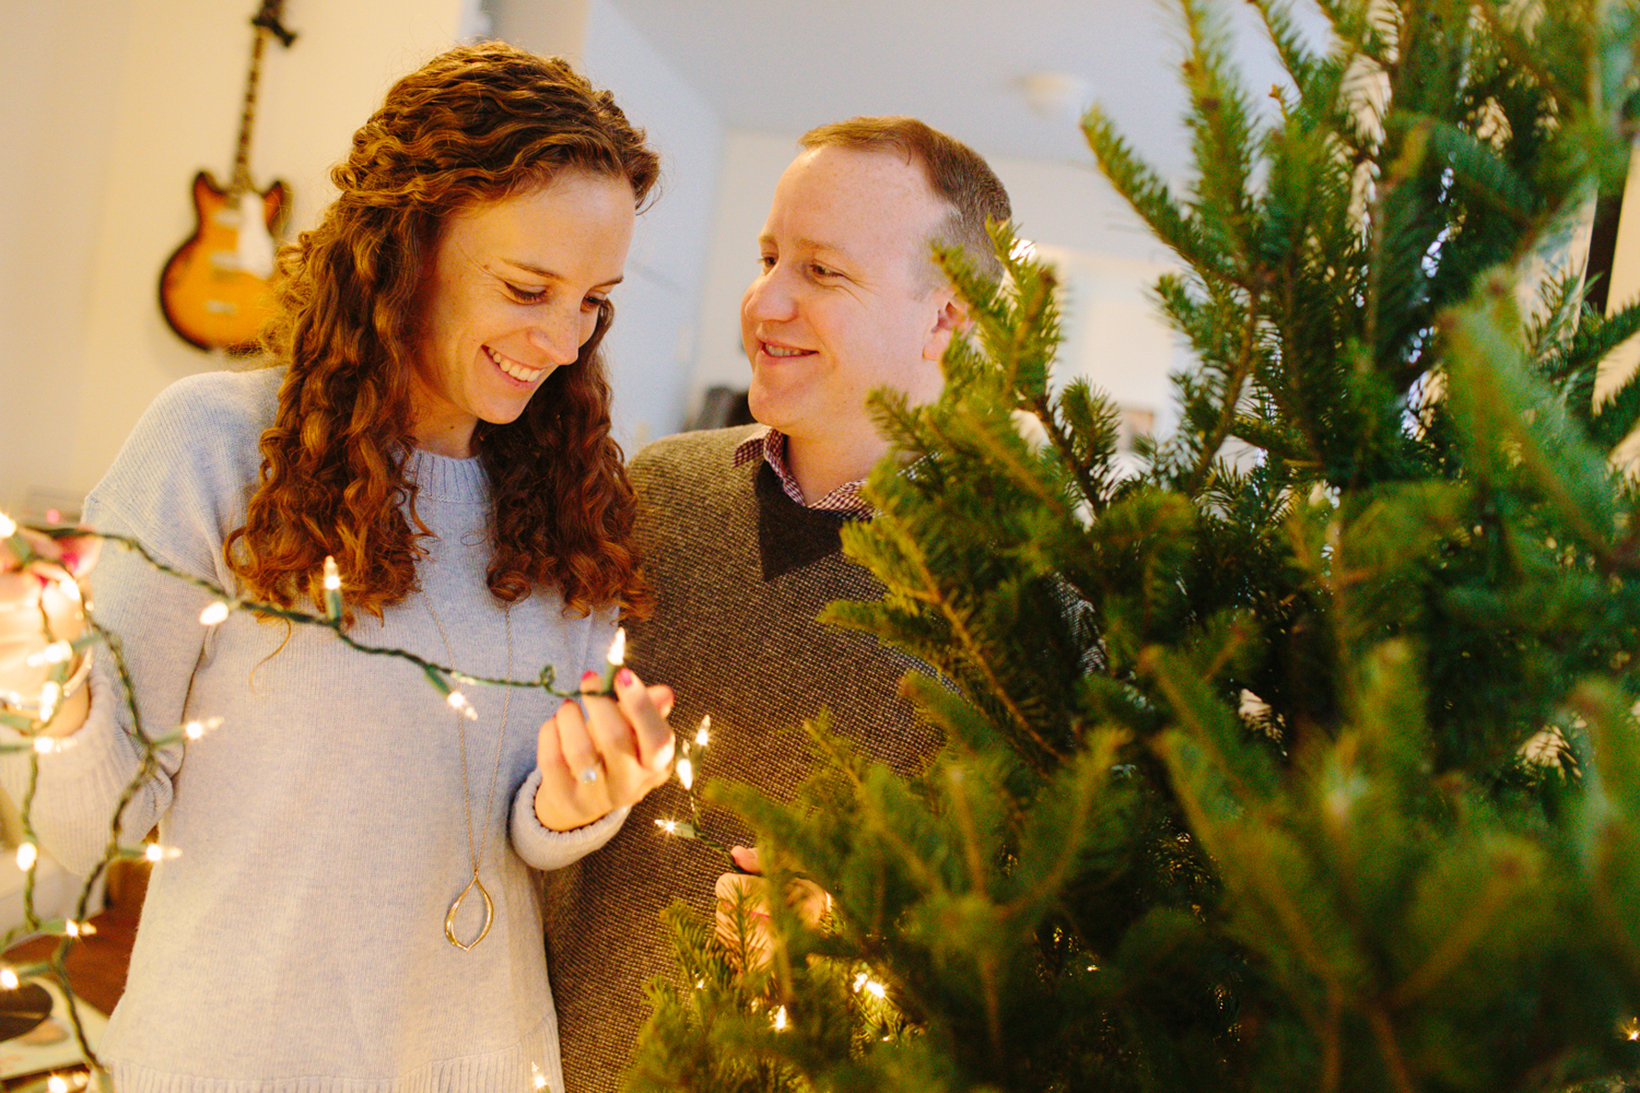 Cape Cod wedding blog photo from Stacey Hedman   Photography about Christmas in New York